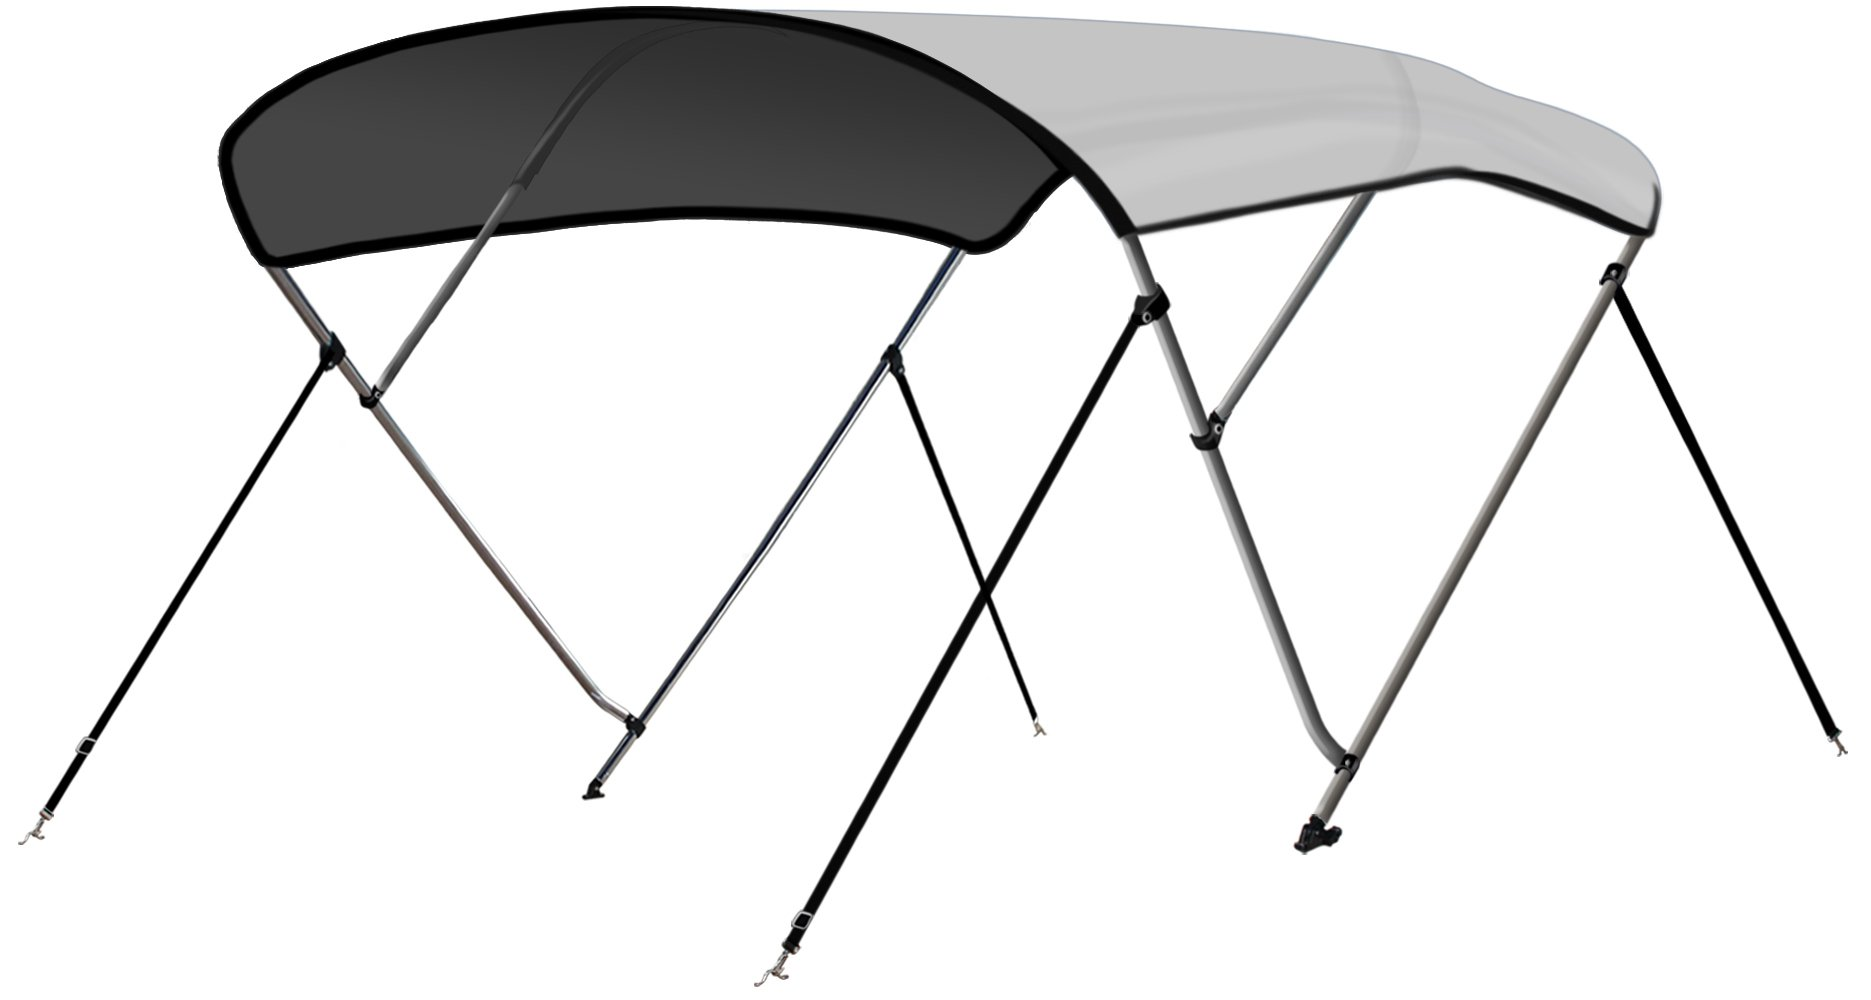 Leader Accessories 13 Colors 3 Bow Bimini Top Boat Cover 4 Straps for Front and Rear Includes Mounting Hardwares with 1 Inch Aluminum Frame (Light Grey, 6'L x 46'' H x 67''-72'' W) by Leader Accessories